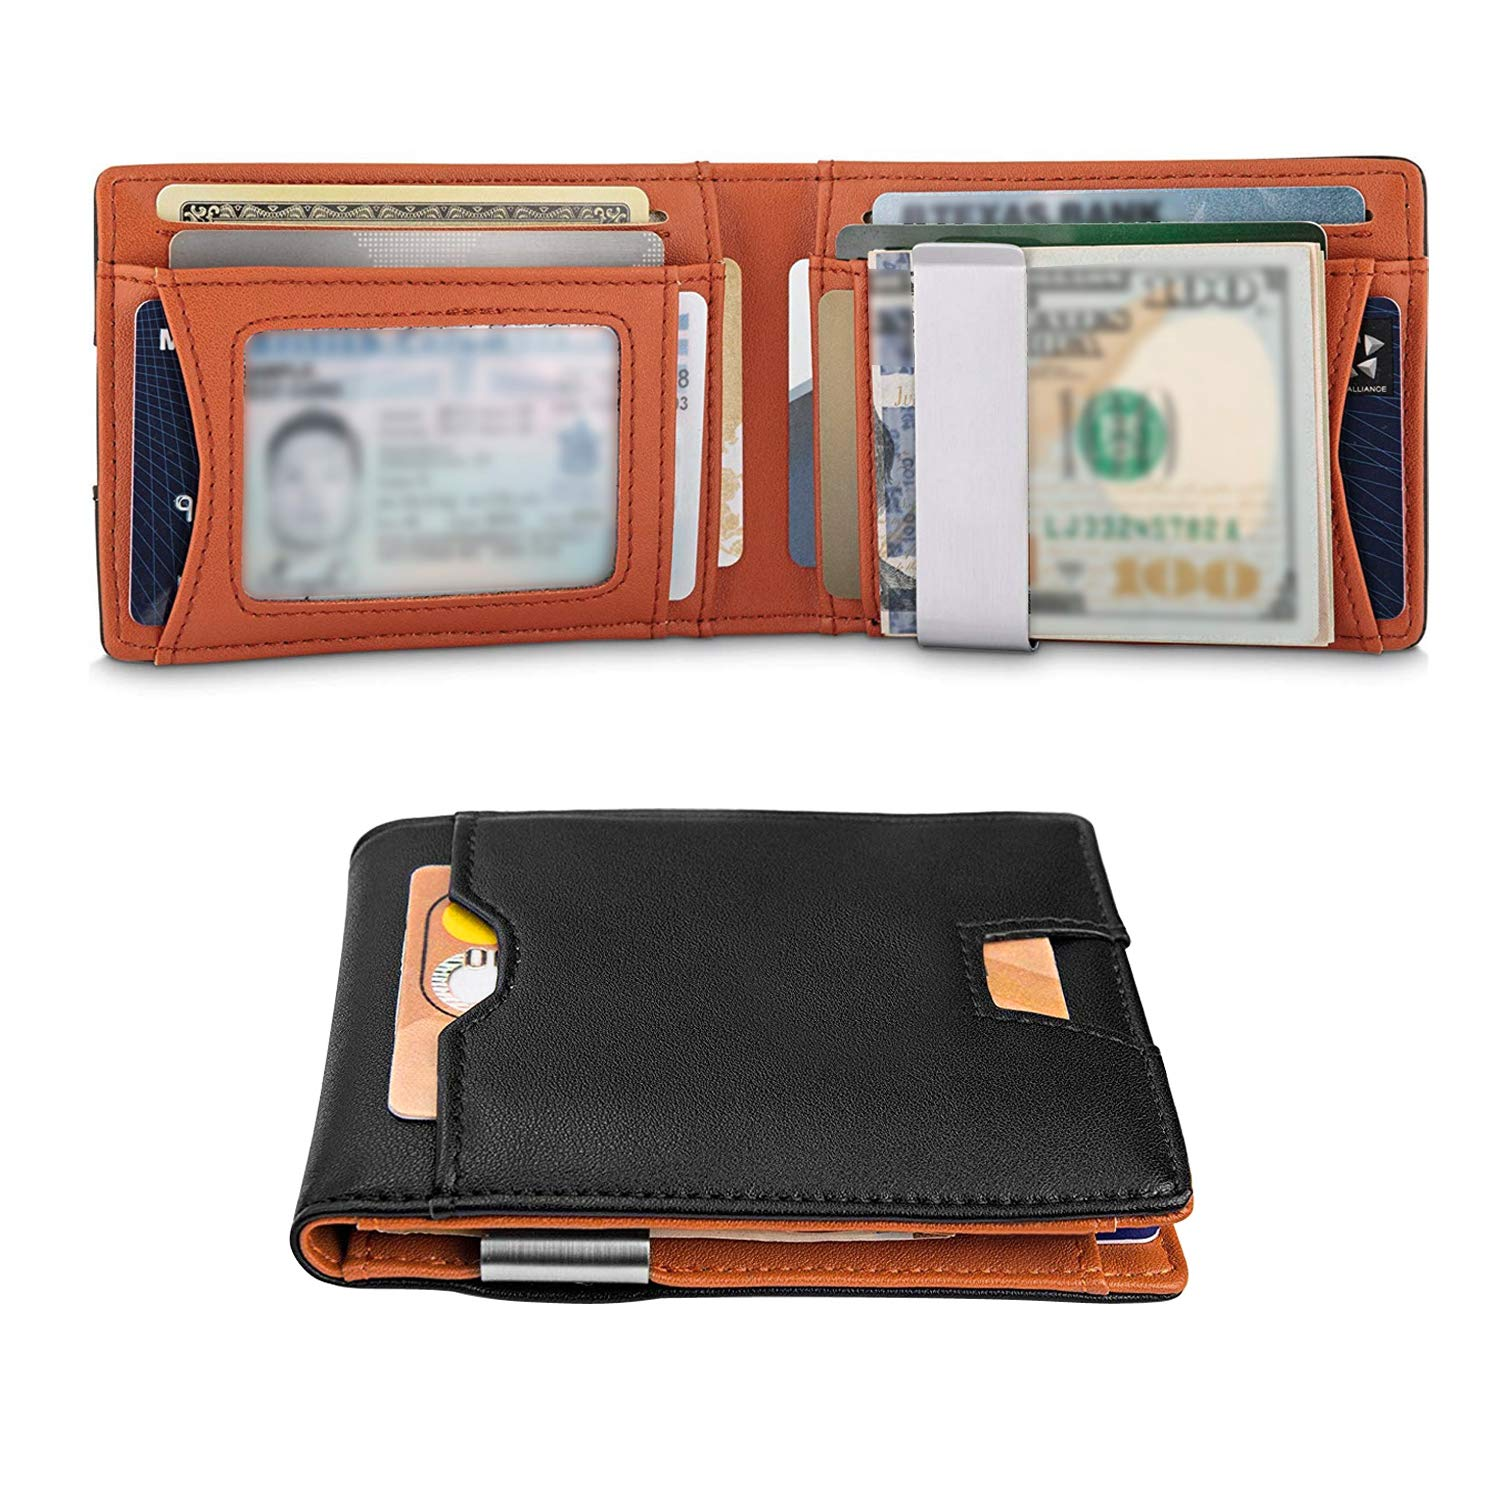 c4e90804e5f0 Slim Pocket Wallet with Money Clip RFID Blocking Bifold Genuine Leather Man Pocket  Wallet Minimalist Wallets for Men at Amazon Men's Clothing store: